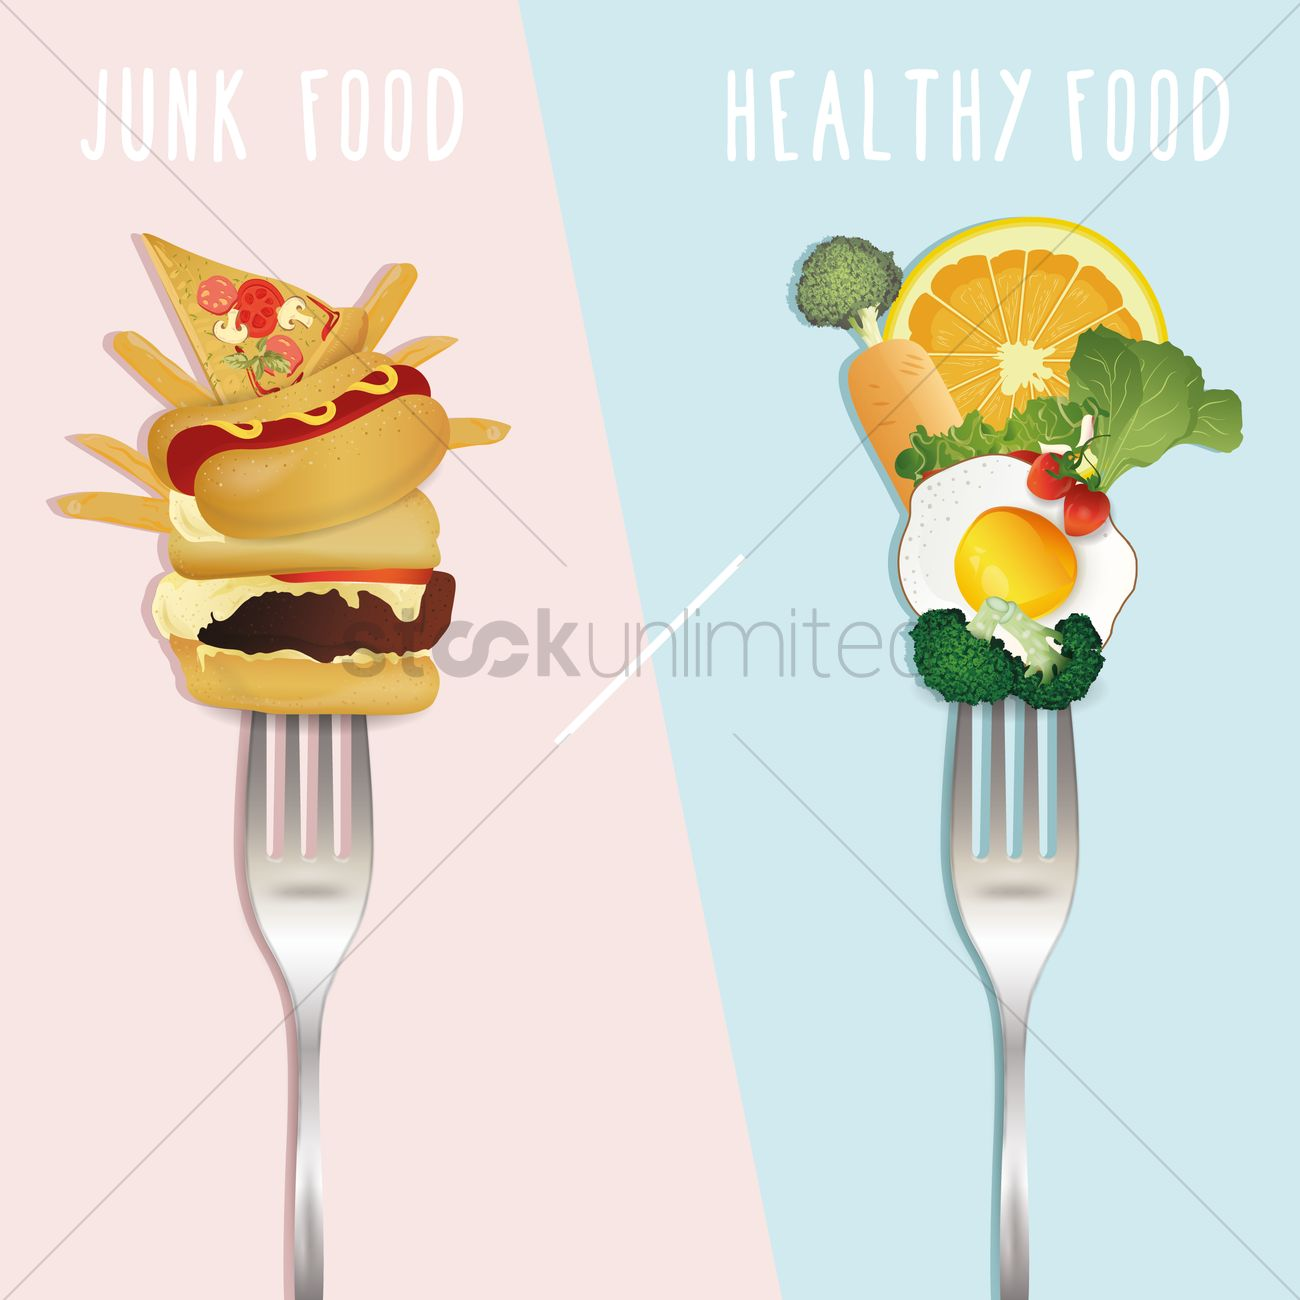 Can Junk Food Be Healthy